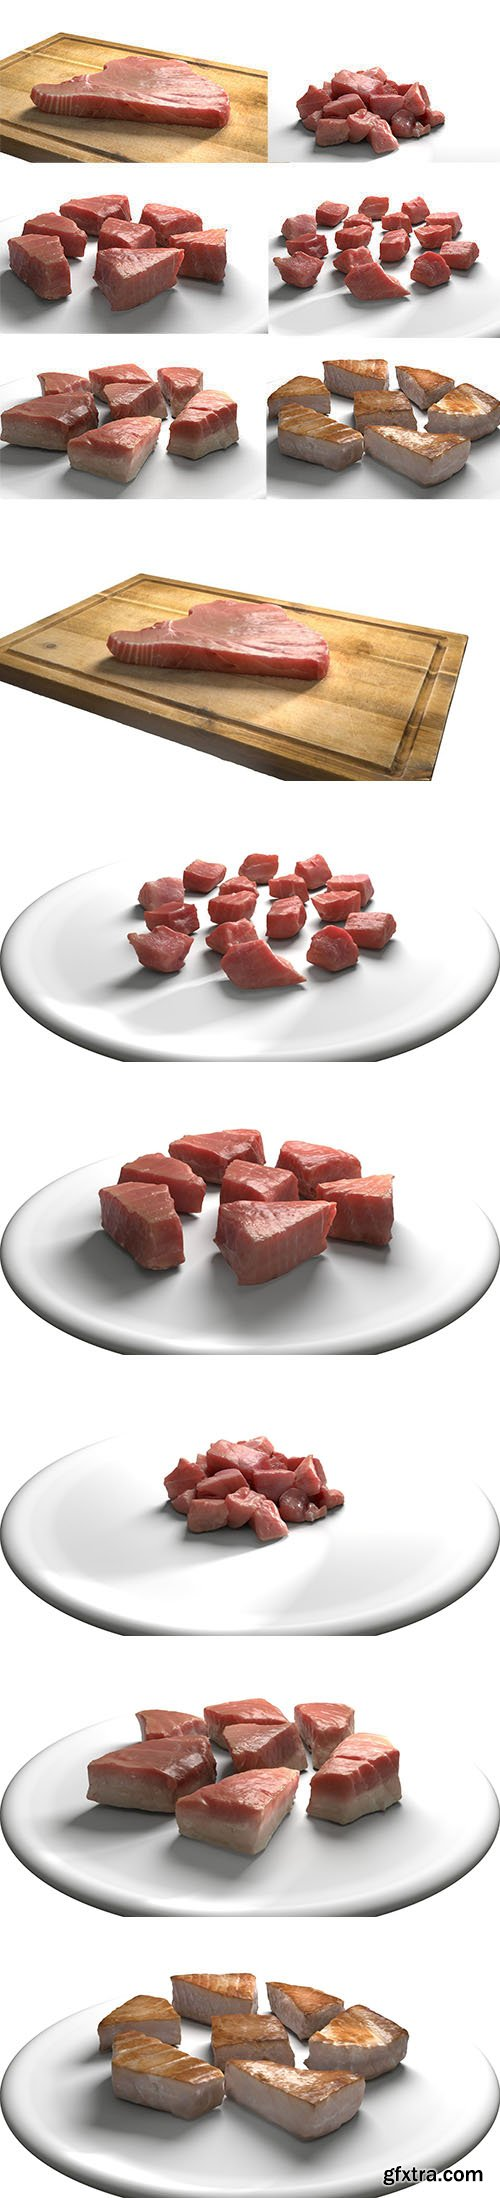 Cgtrader - Tuna Meat Pack - Steak Raw Cooked Chopped Low-poly 3D model